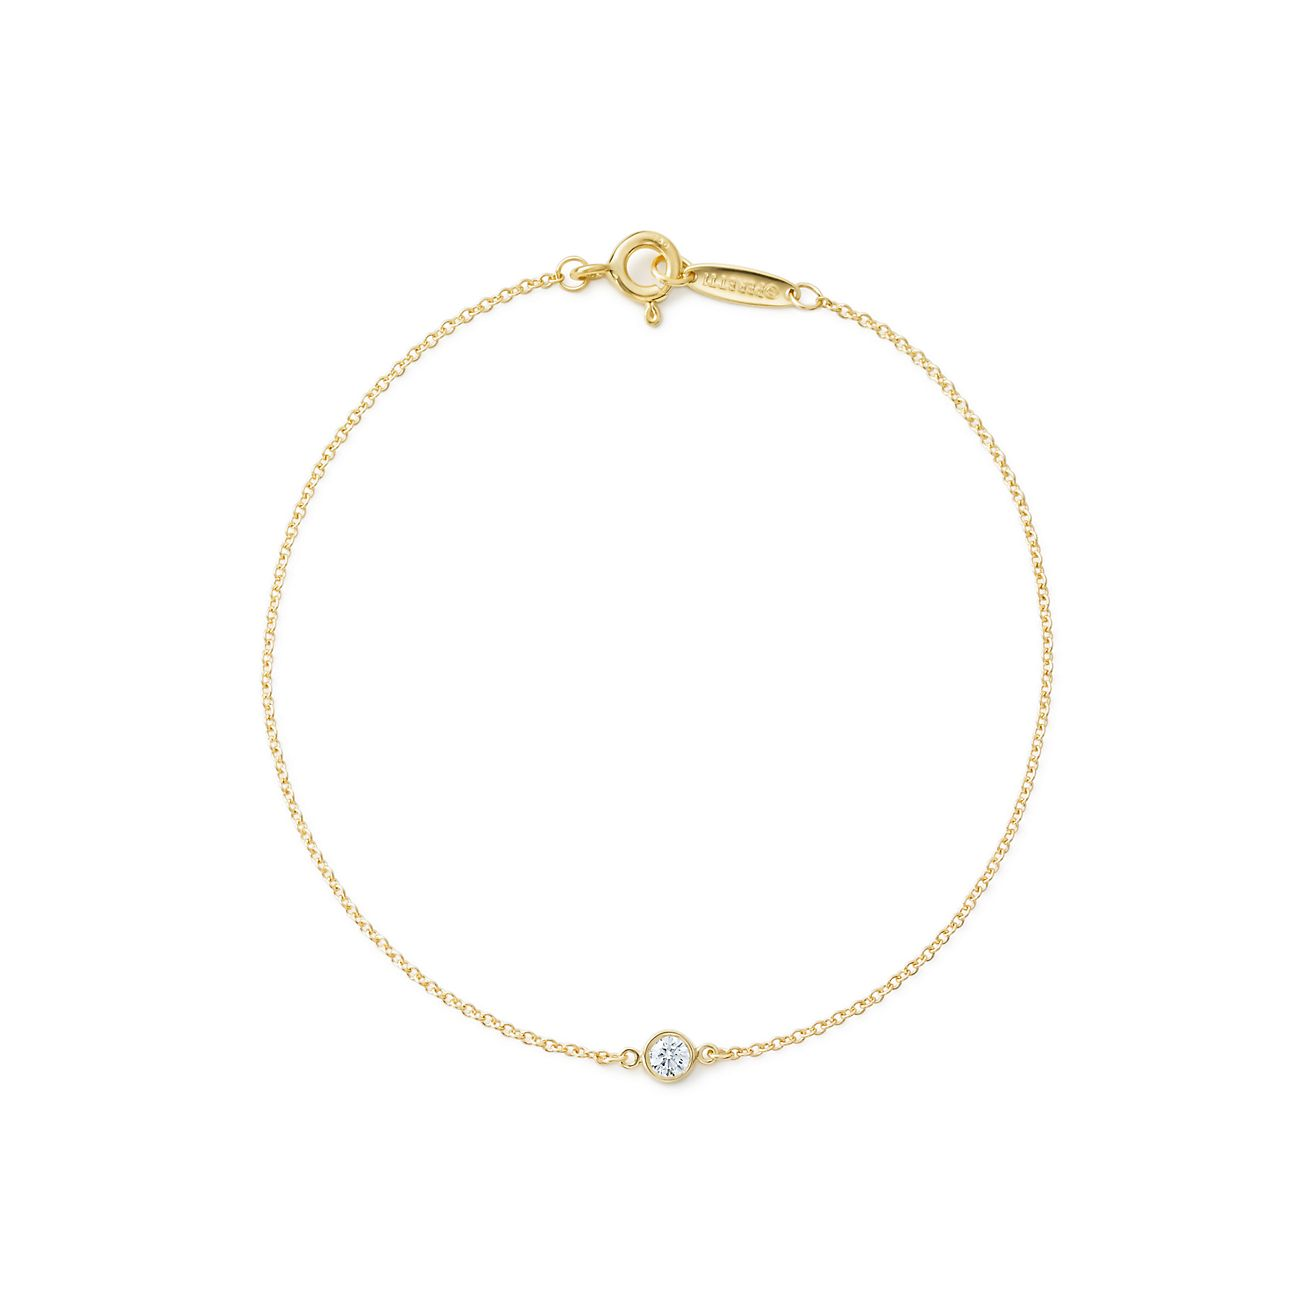 Elsa Peretti Diamonds by the Yard bracelet in 18k gold with a diamond - Size.03 Tiffany & Co.